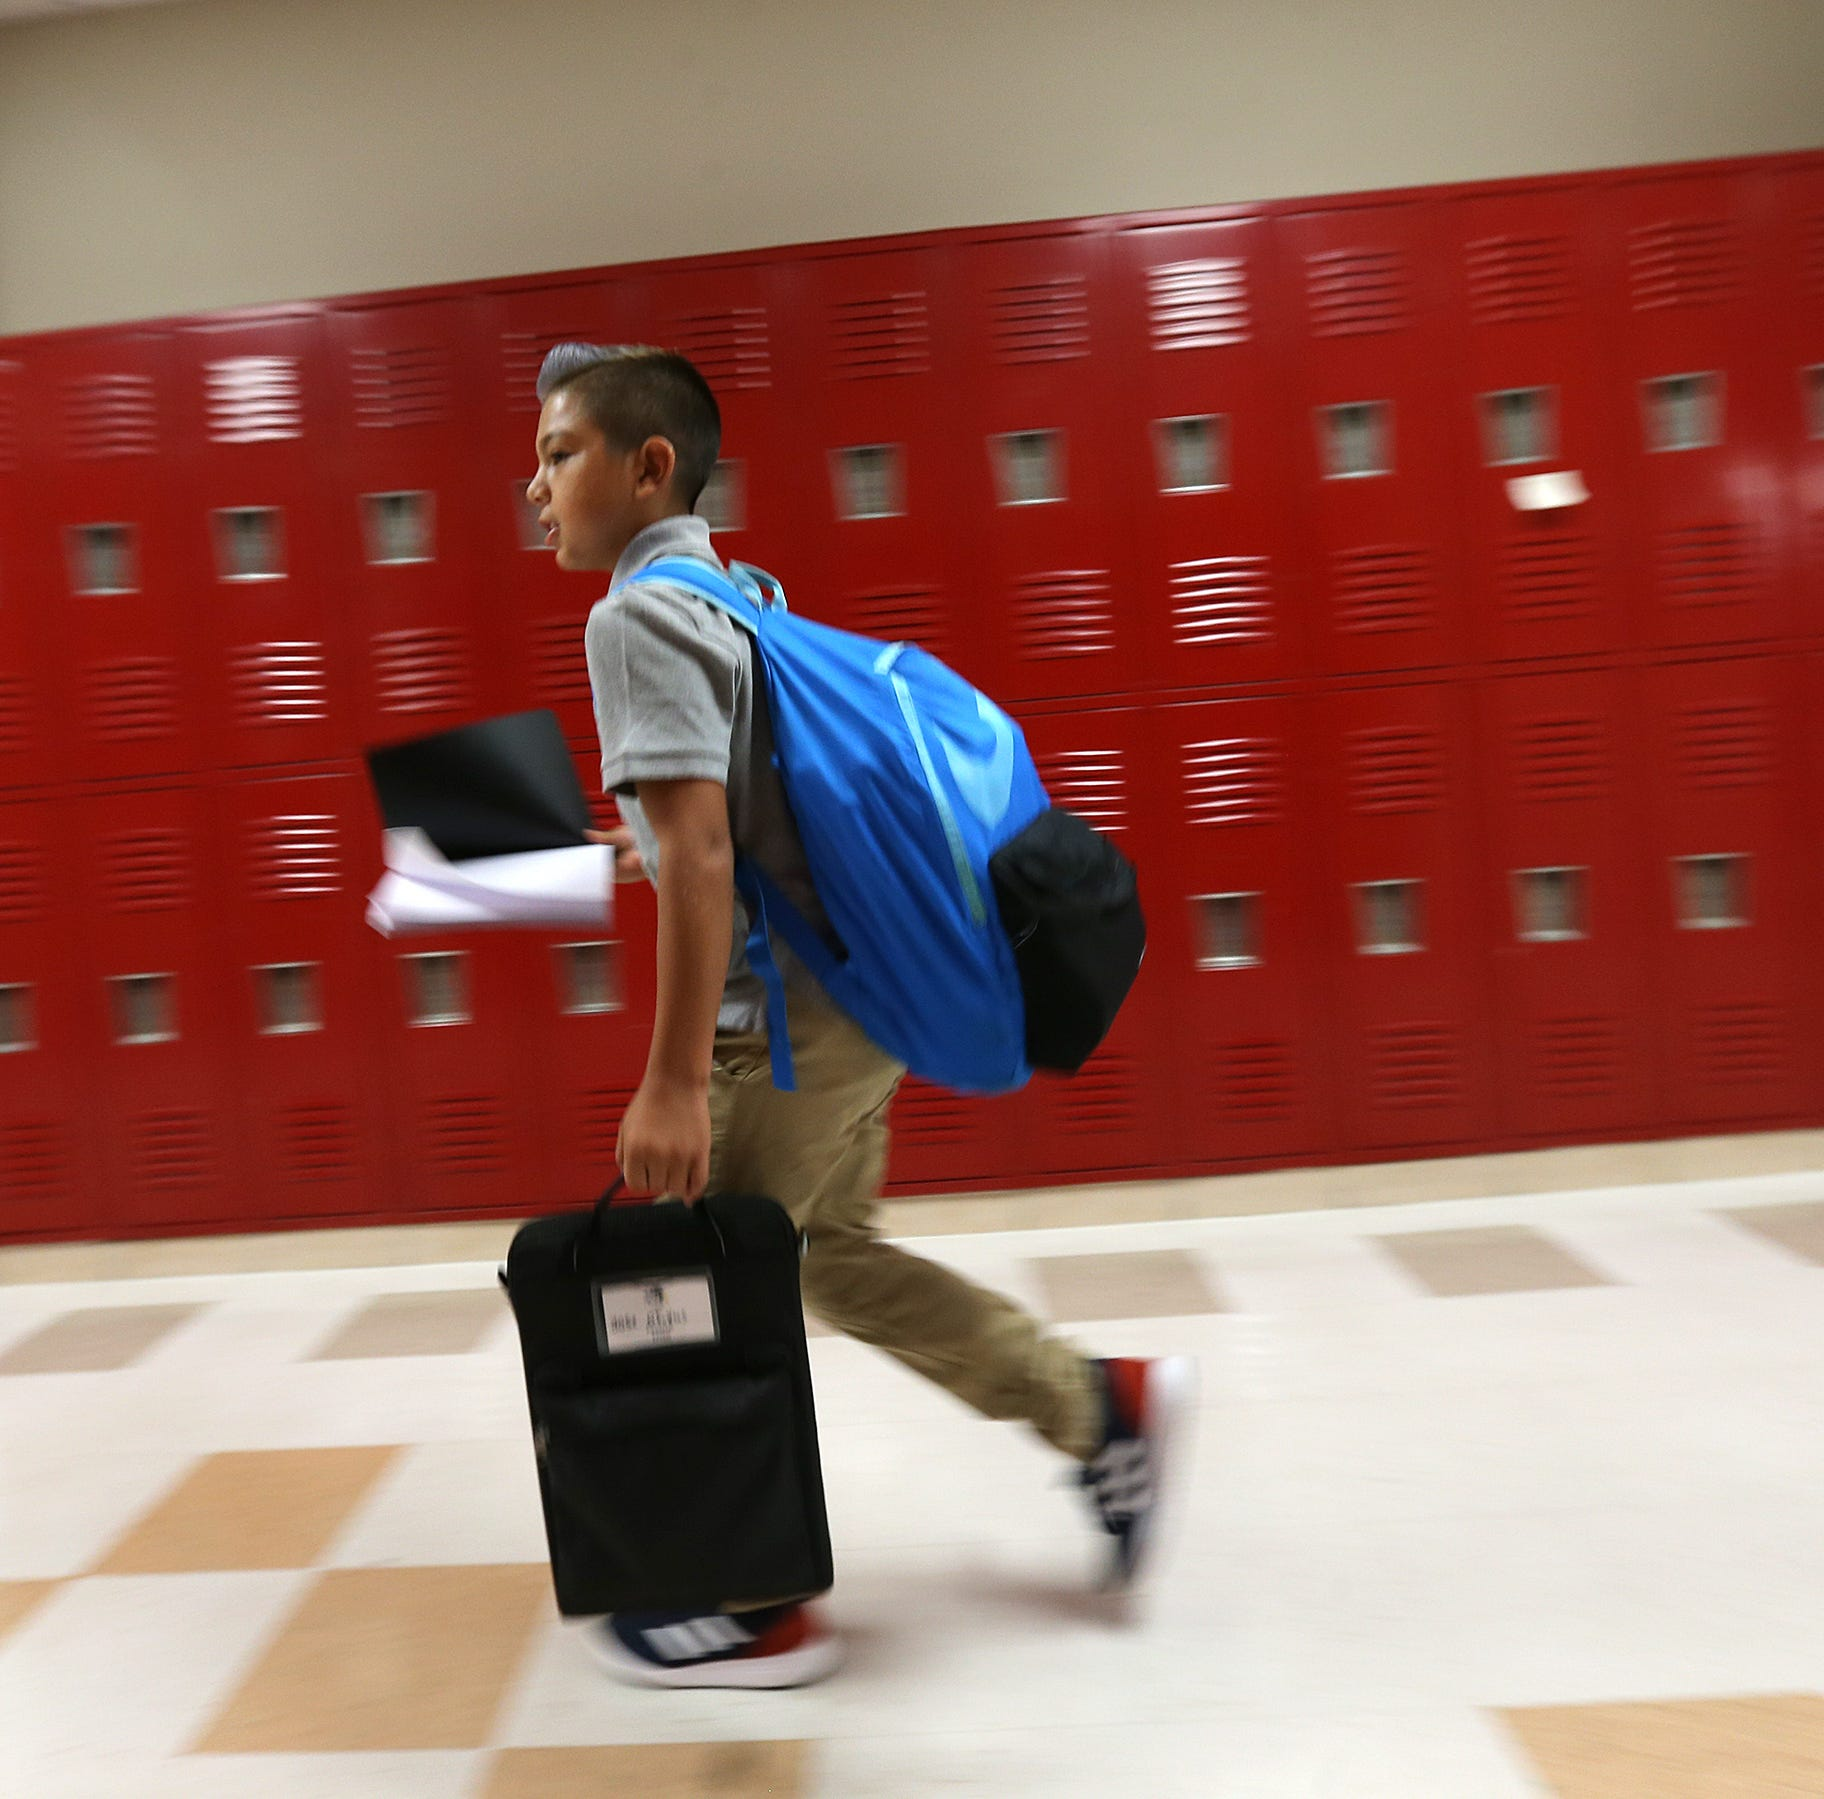 Back to school: Summer over for students in El Paso district, 4 others today